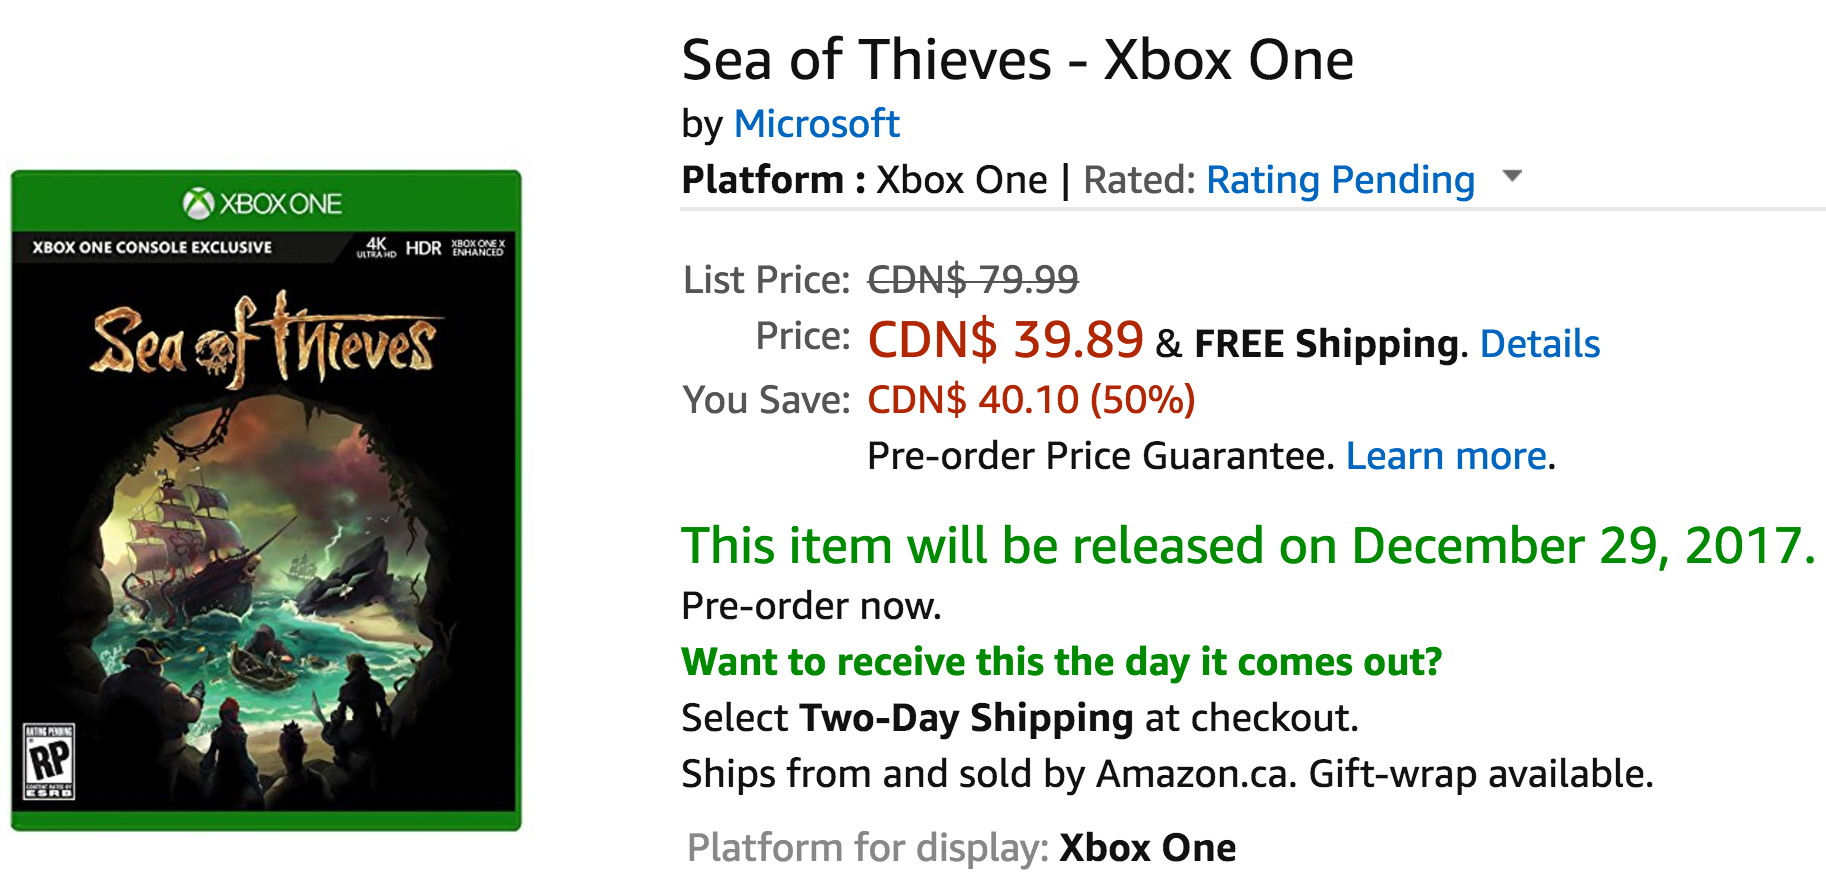 Amazon Canada Deals: Save 50% on Sea of Thieves – Xbox One